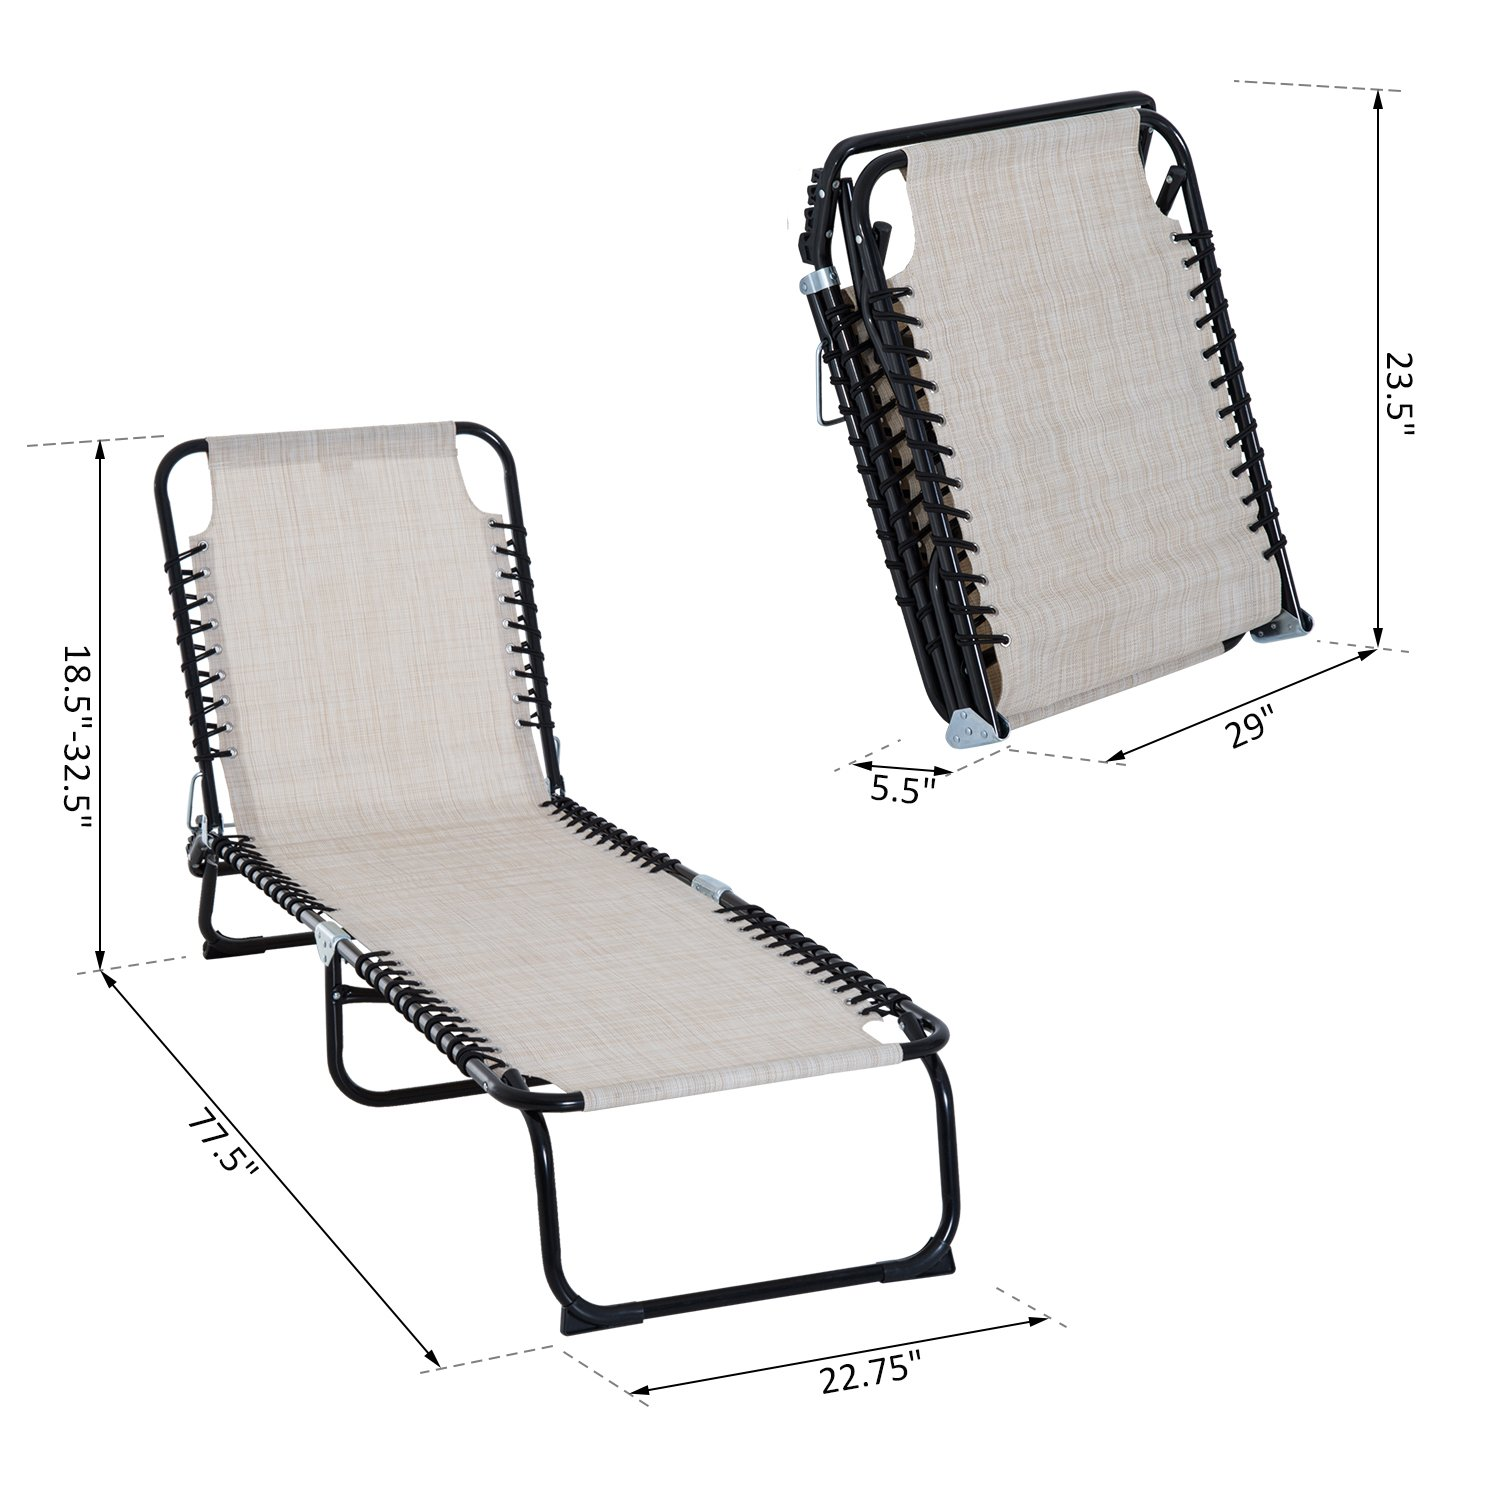 Outsunny 3-Position Reclining Beach Chair Chaise Lounge Folding Chair - Cream White by Outsunny (Image #7)